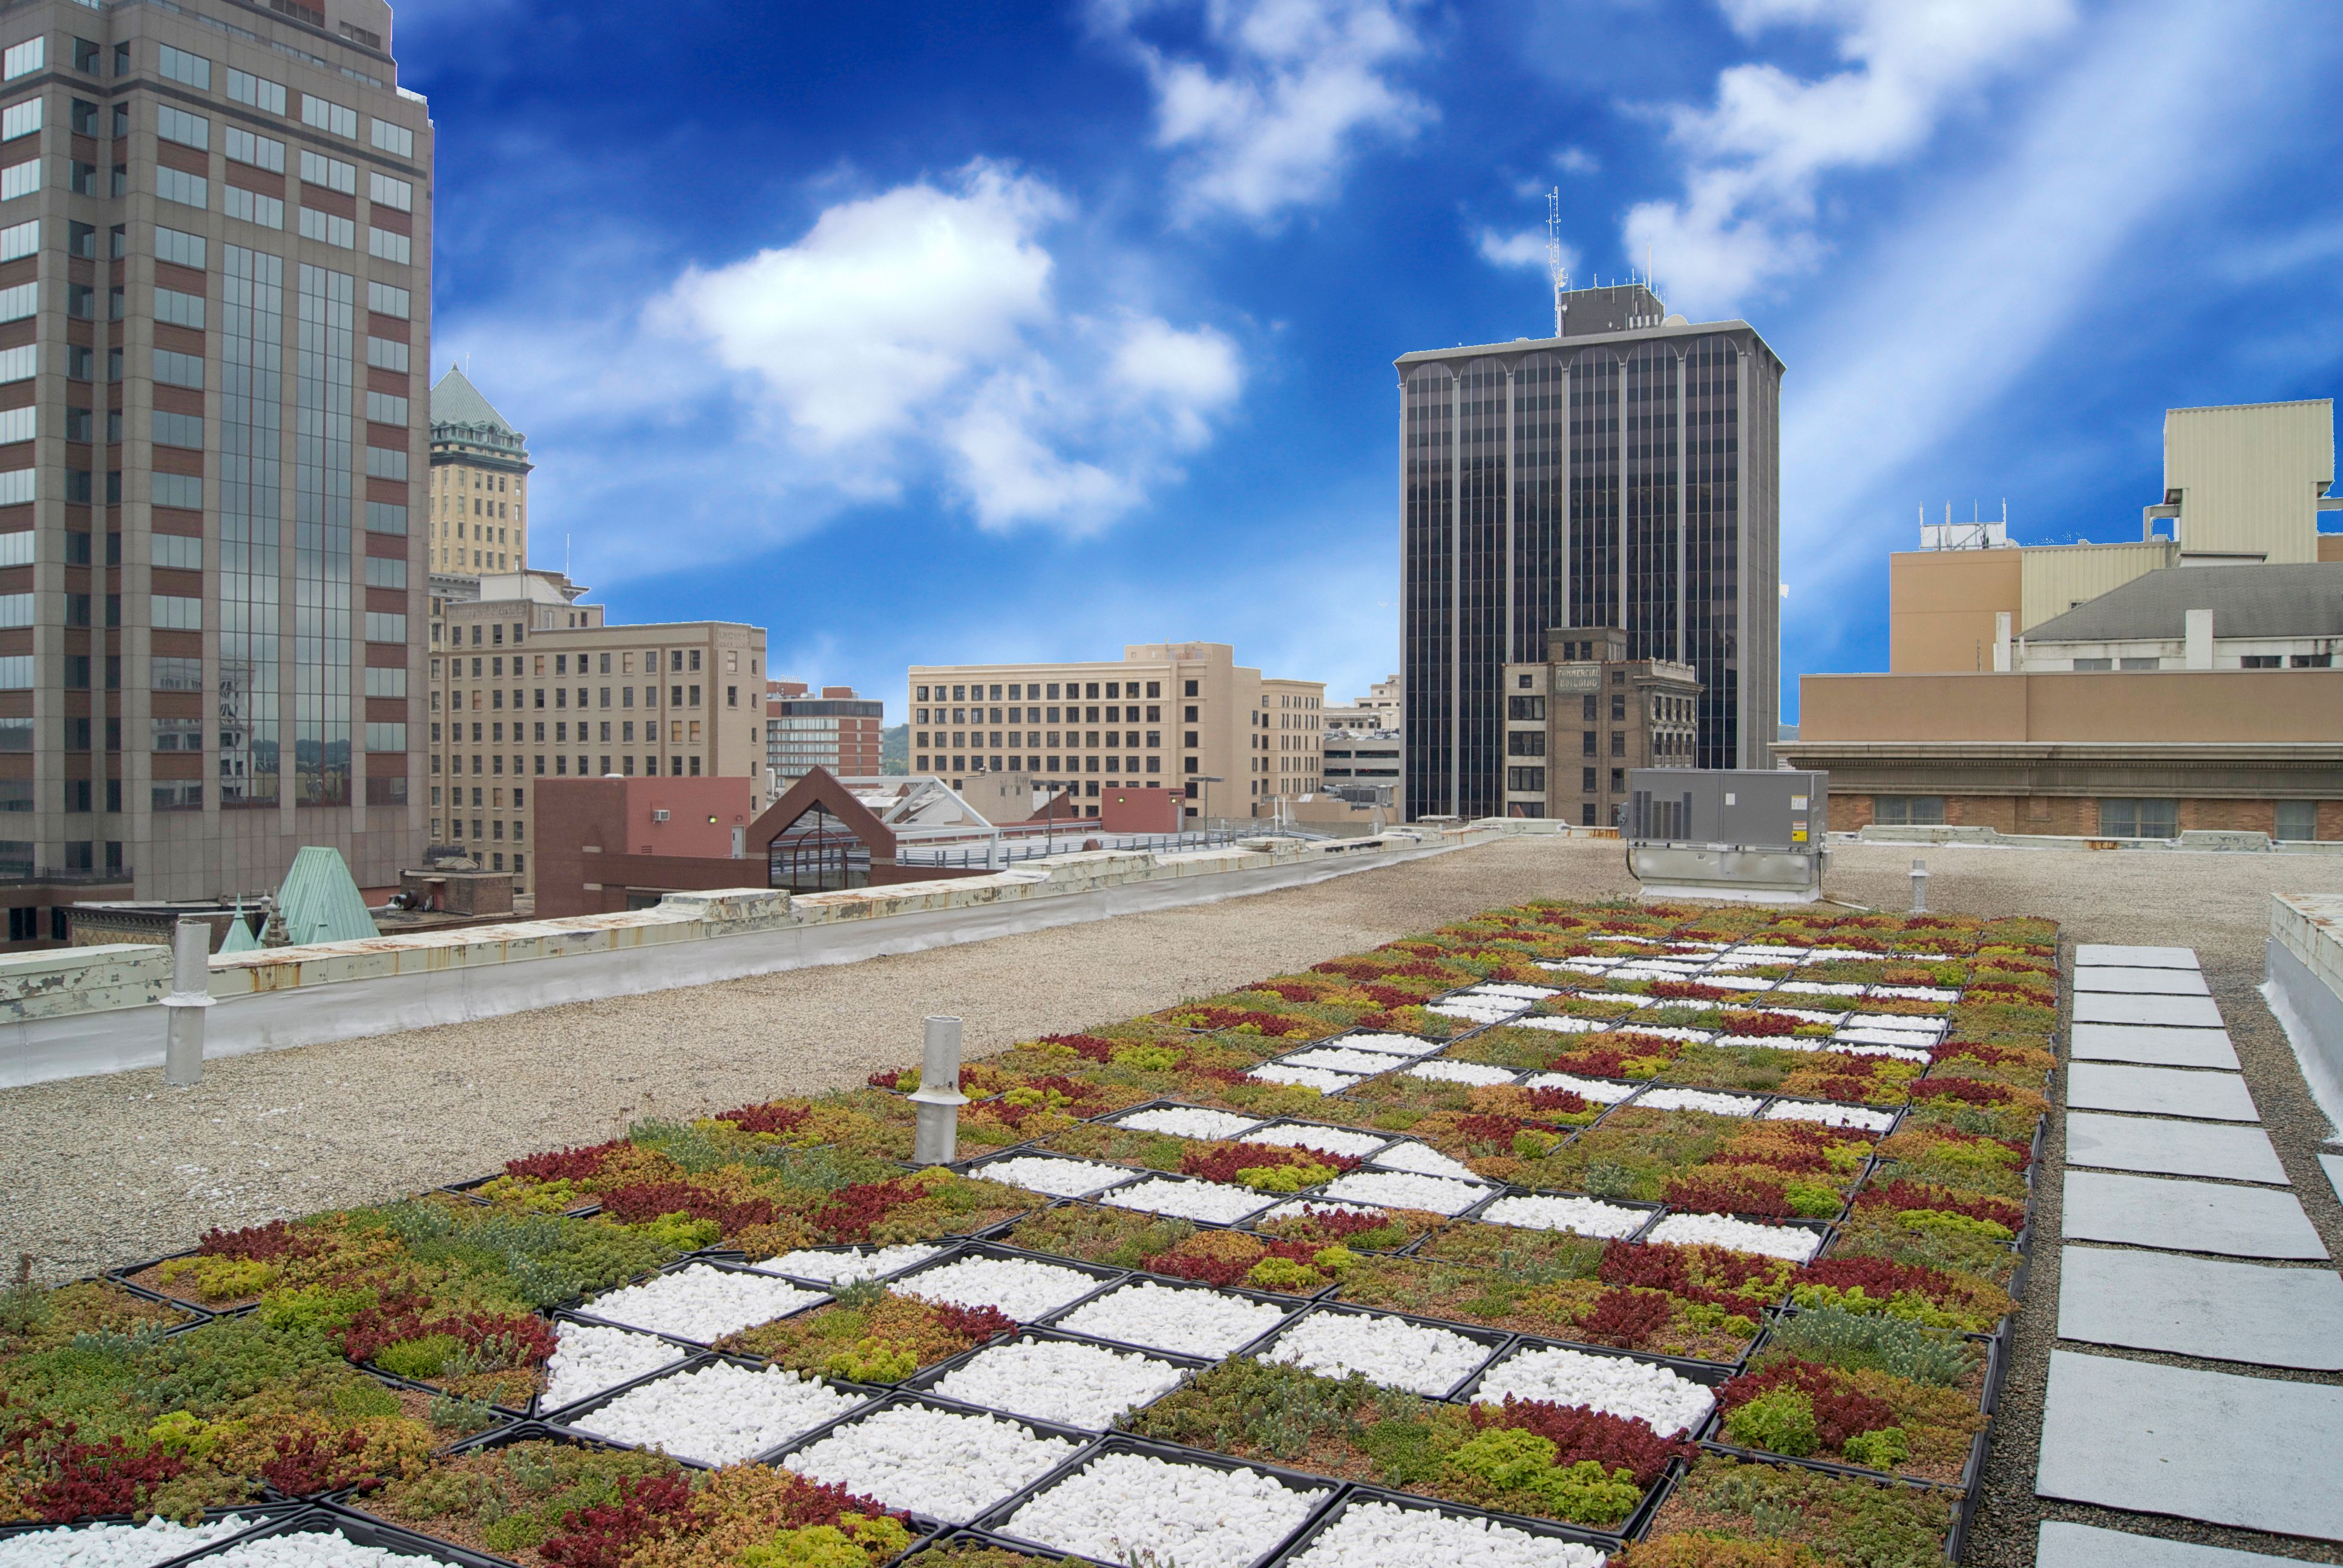 City Hall's green roof. Learn why it's good for our city's environment by clicking here. #GreenDayton